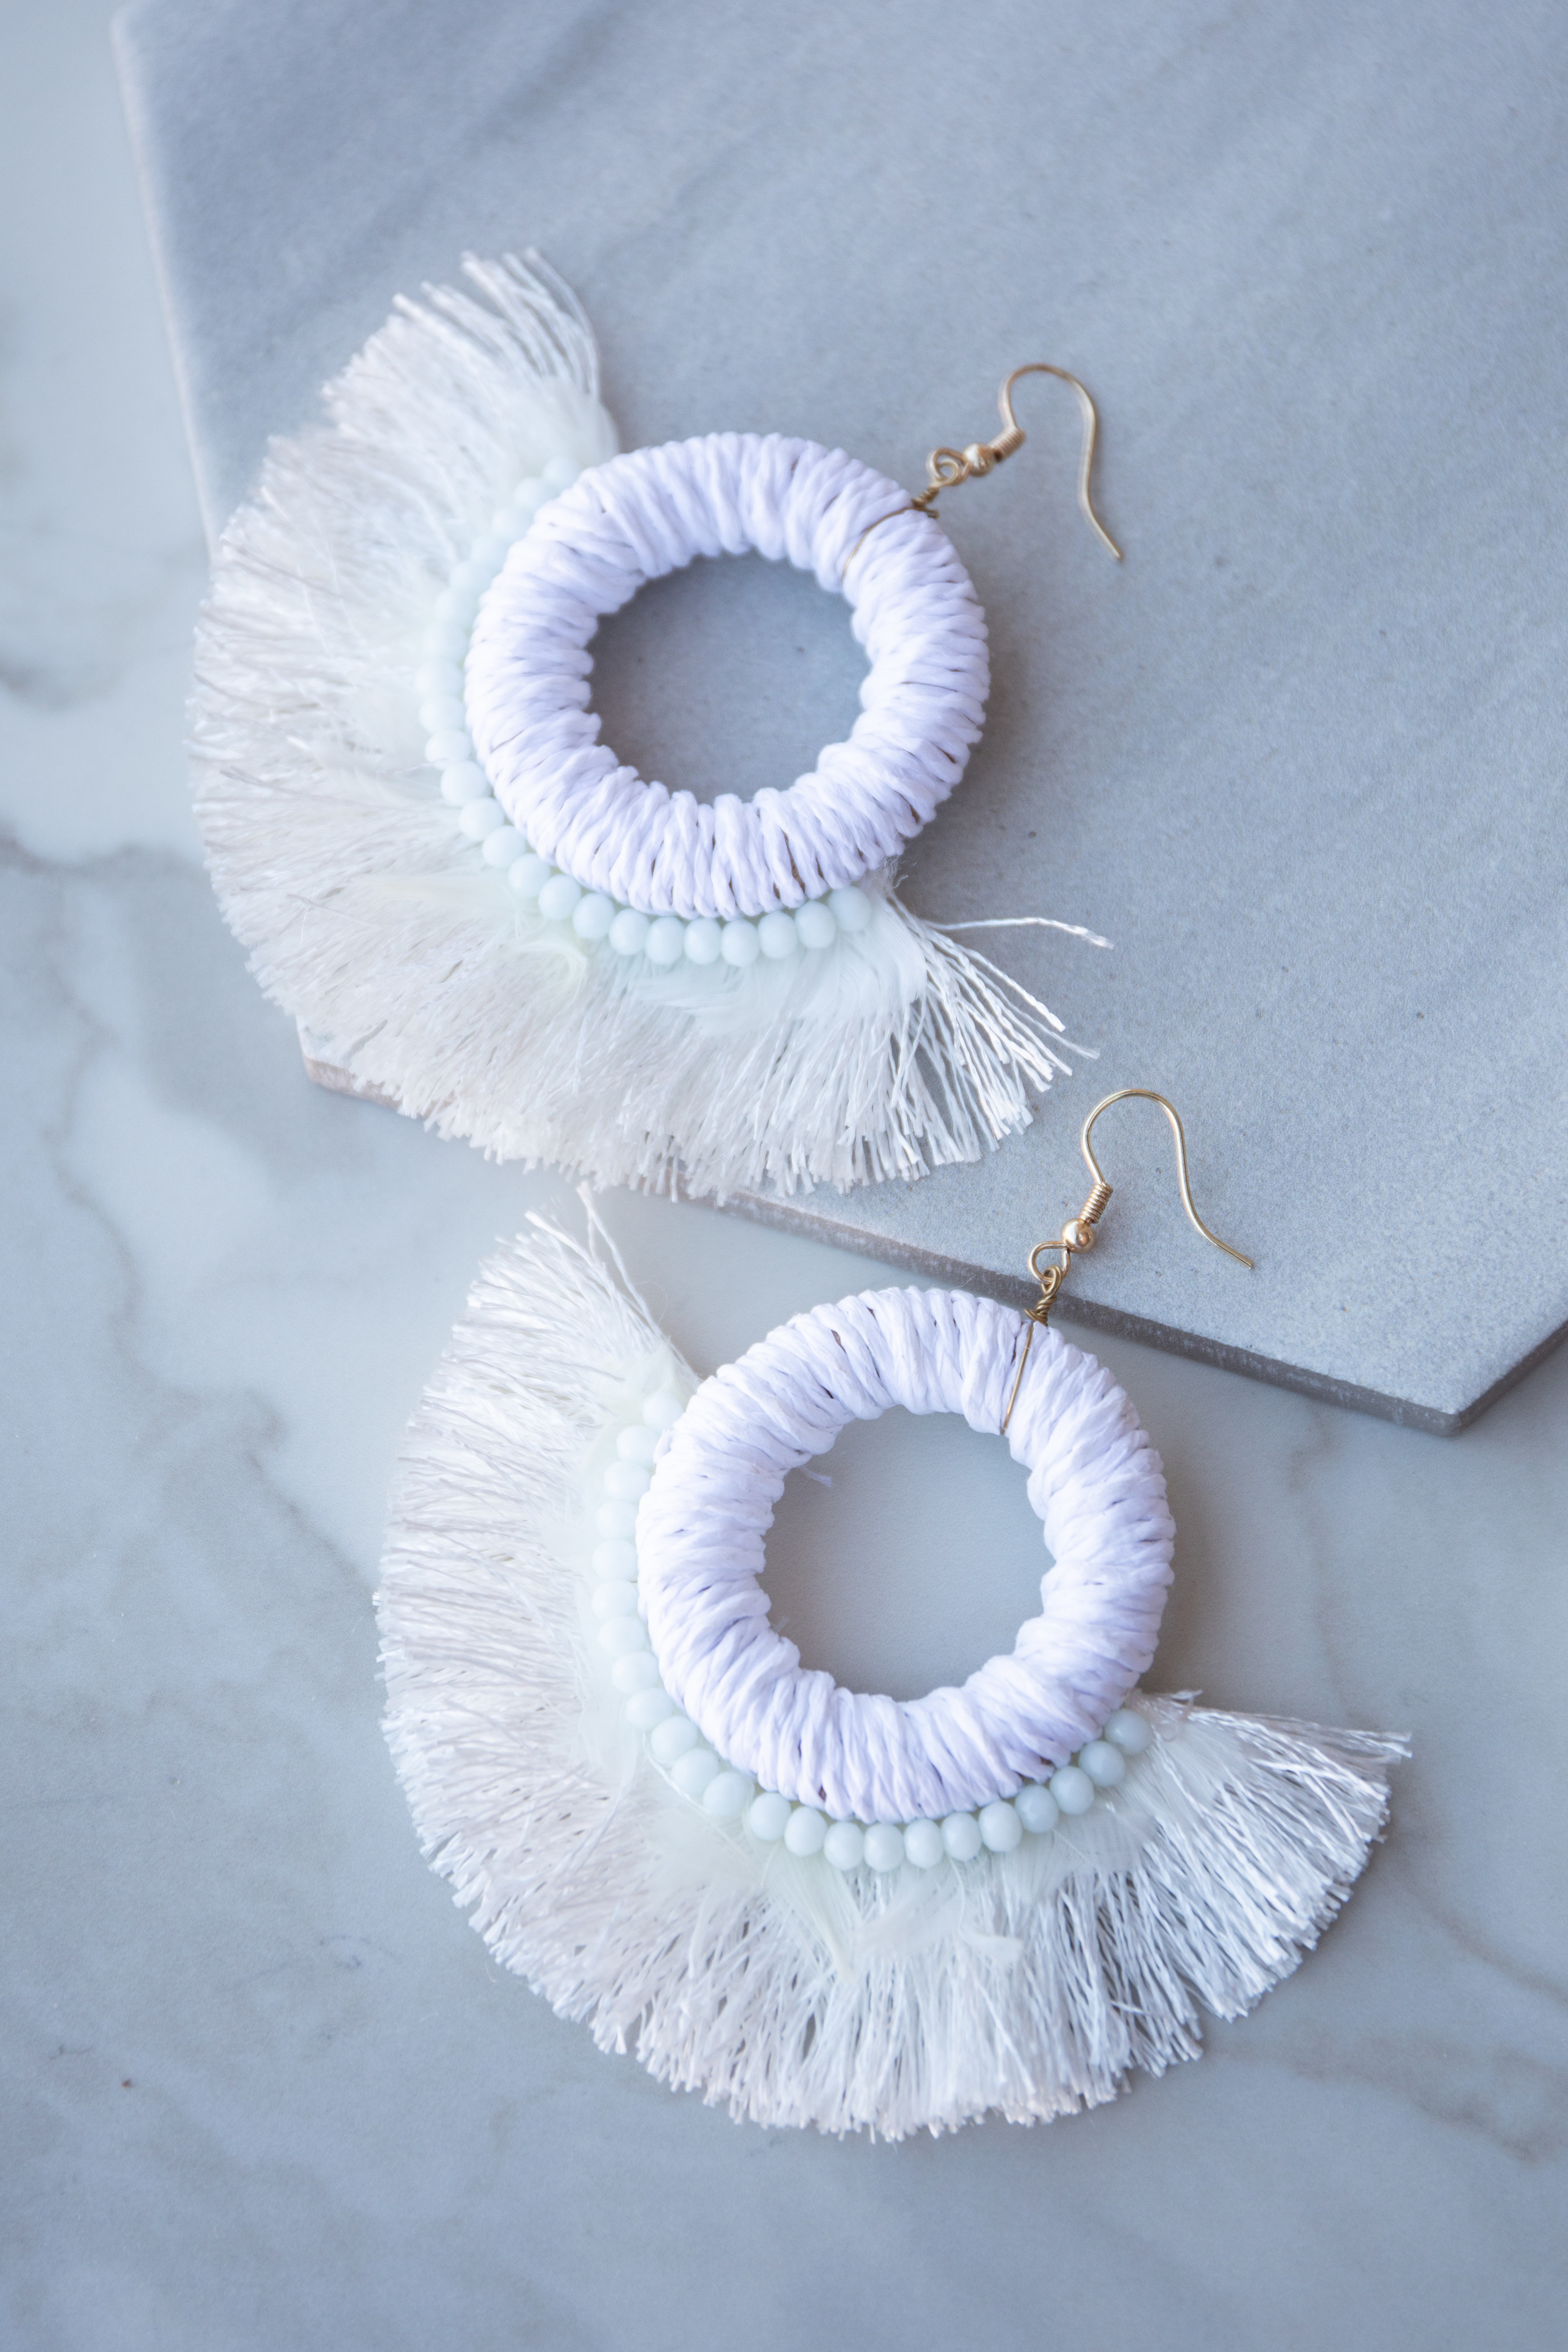 Off White Hoop Earrings with Bead and Feather Details